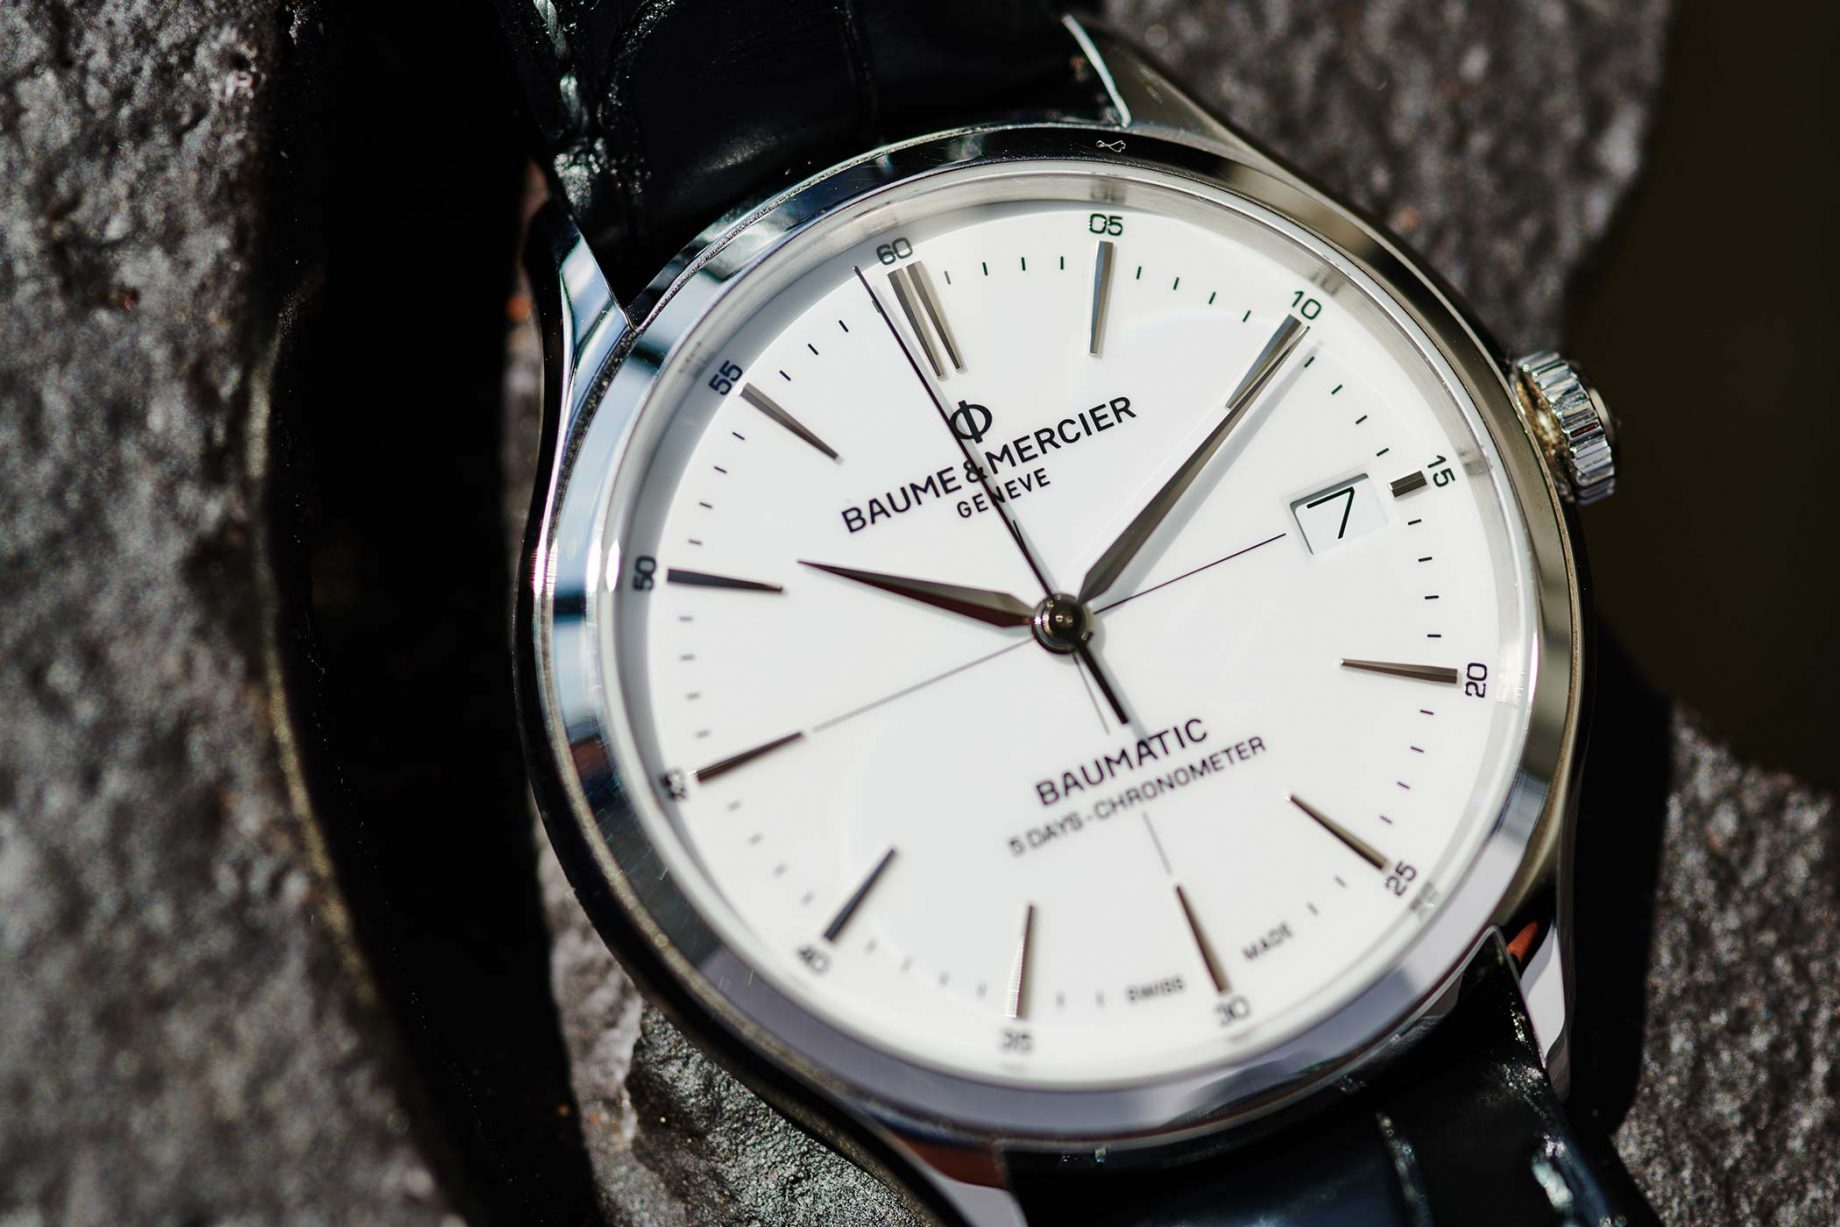 Baume & Mercier Baumatic